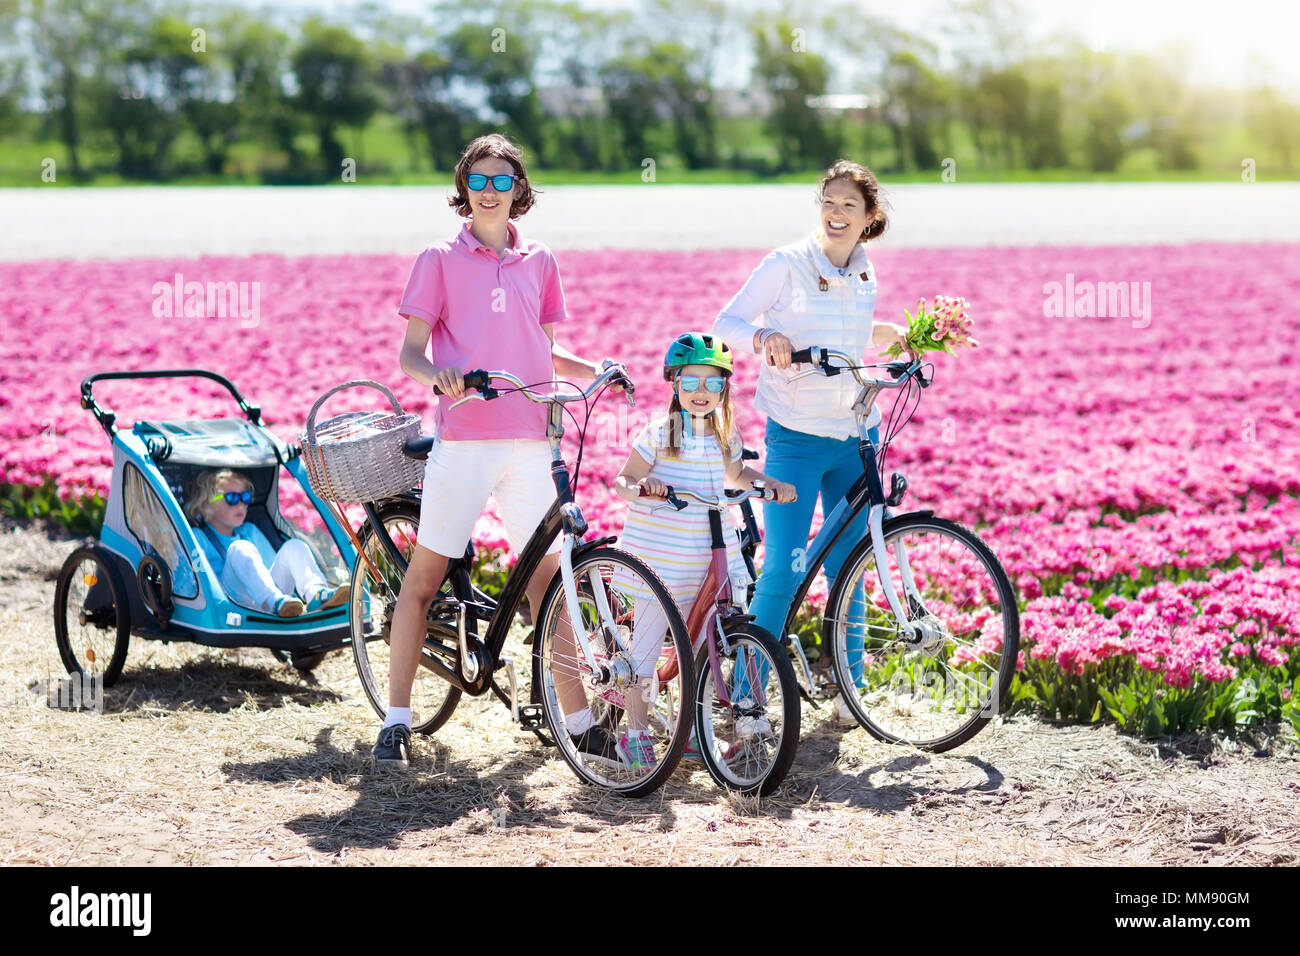 Happy Dutch family riding bicycle in tulip flower fields in Netherlands. Mother and kids on bikes at blooming tulips in Holland. Baby in bike trailer. Stock Photo